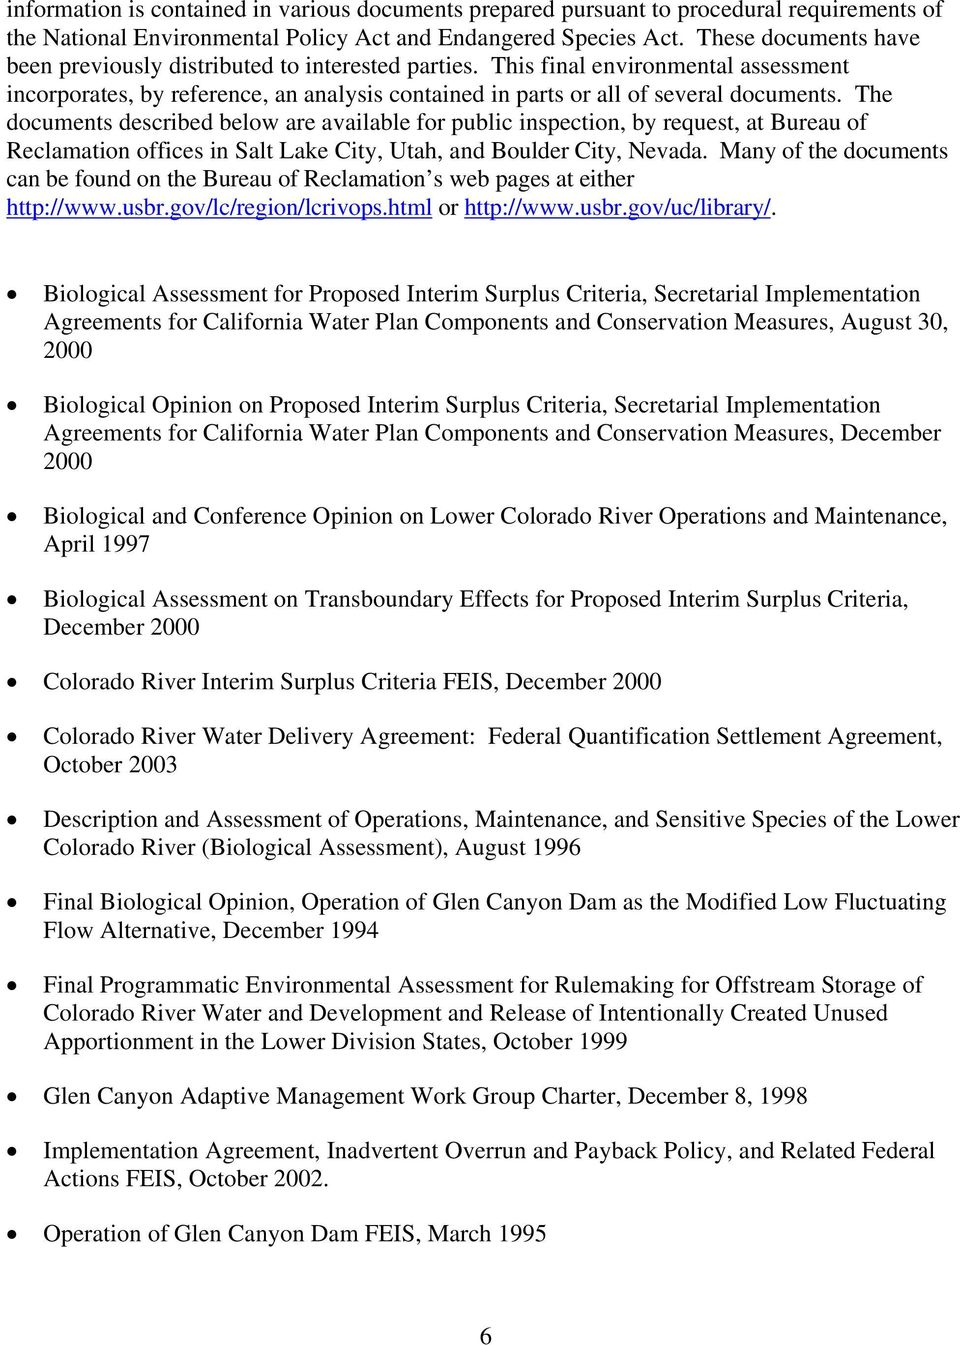 The documents described below are available for public inspection, by request, at Bureau of Reclamation offices in Salt Lake City, Utah, and Boulder City, Nevada.